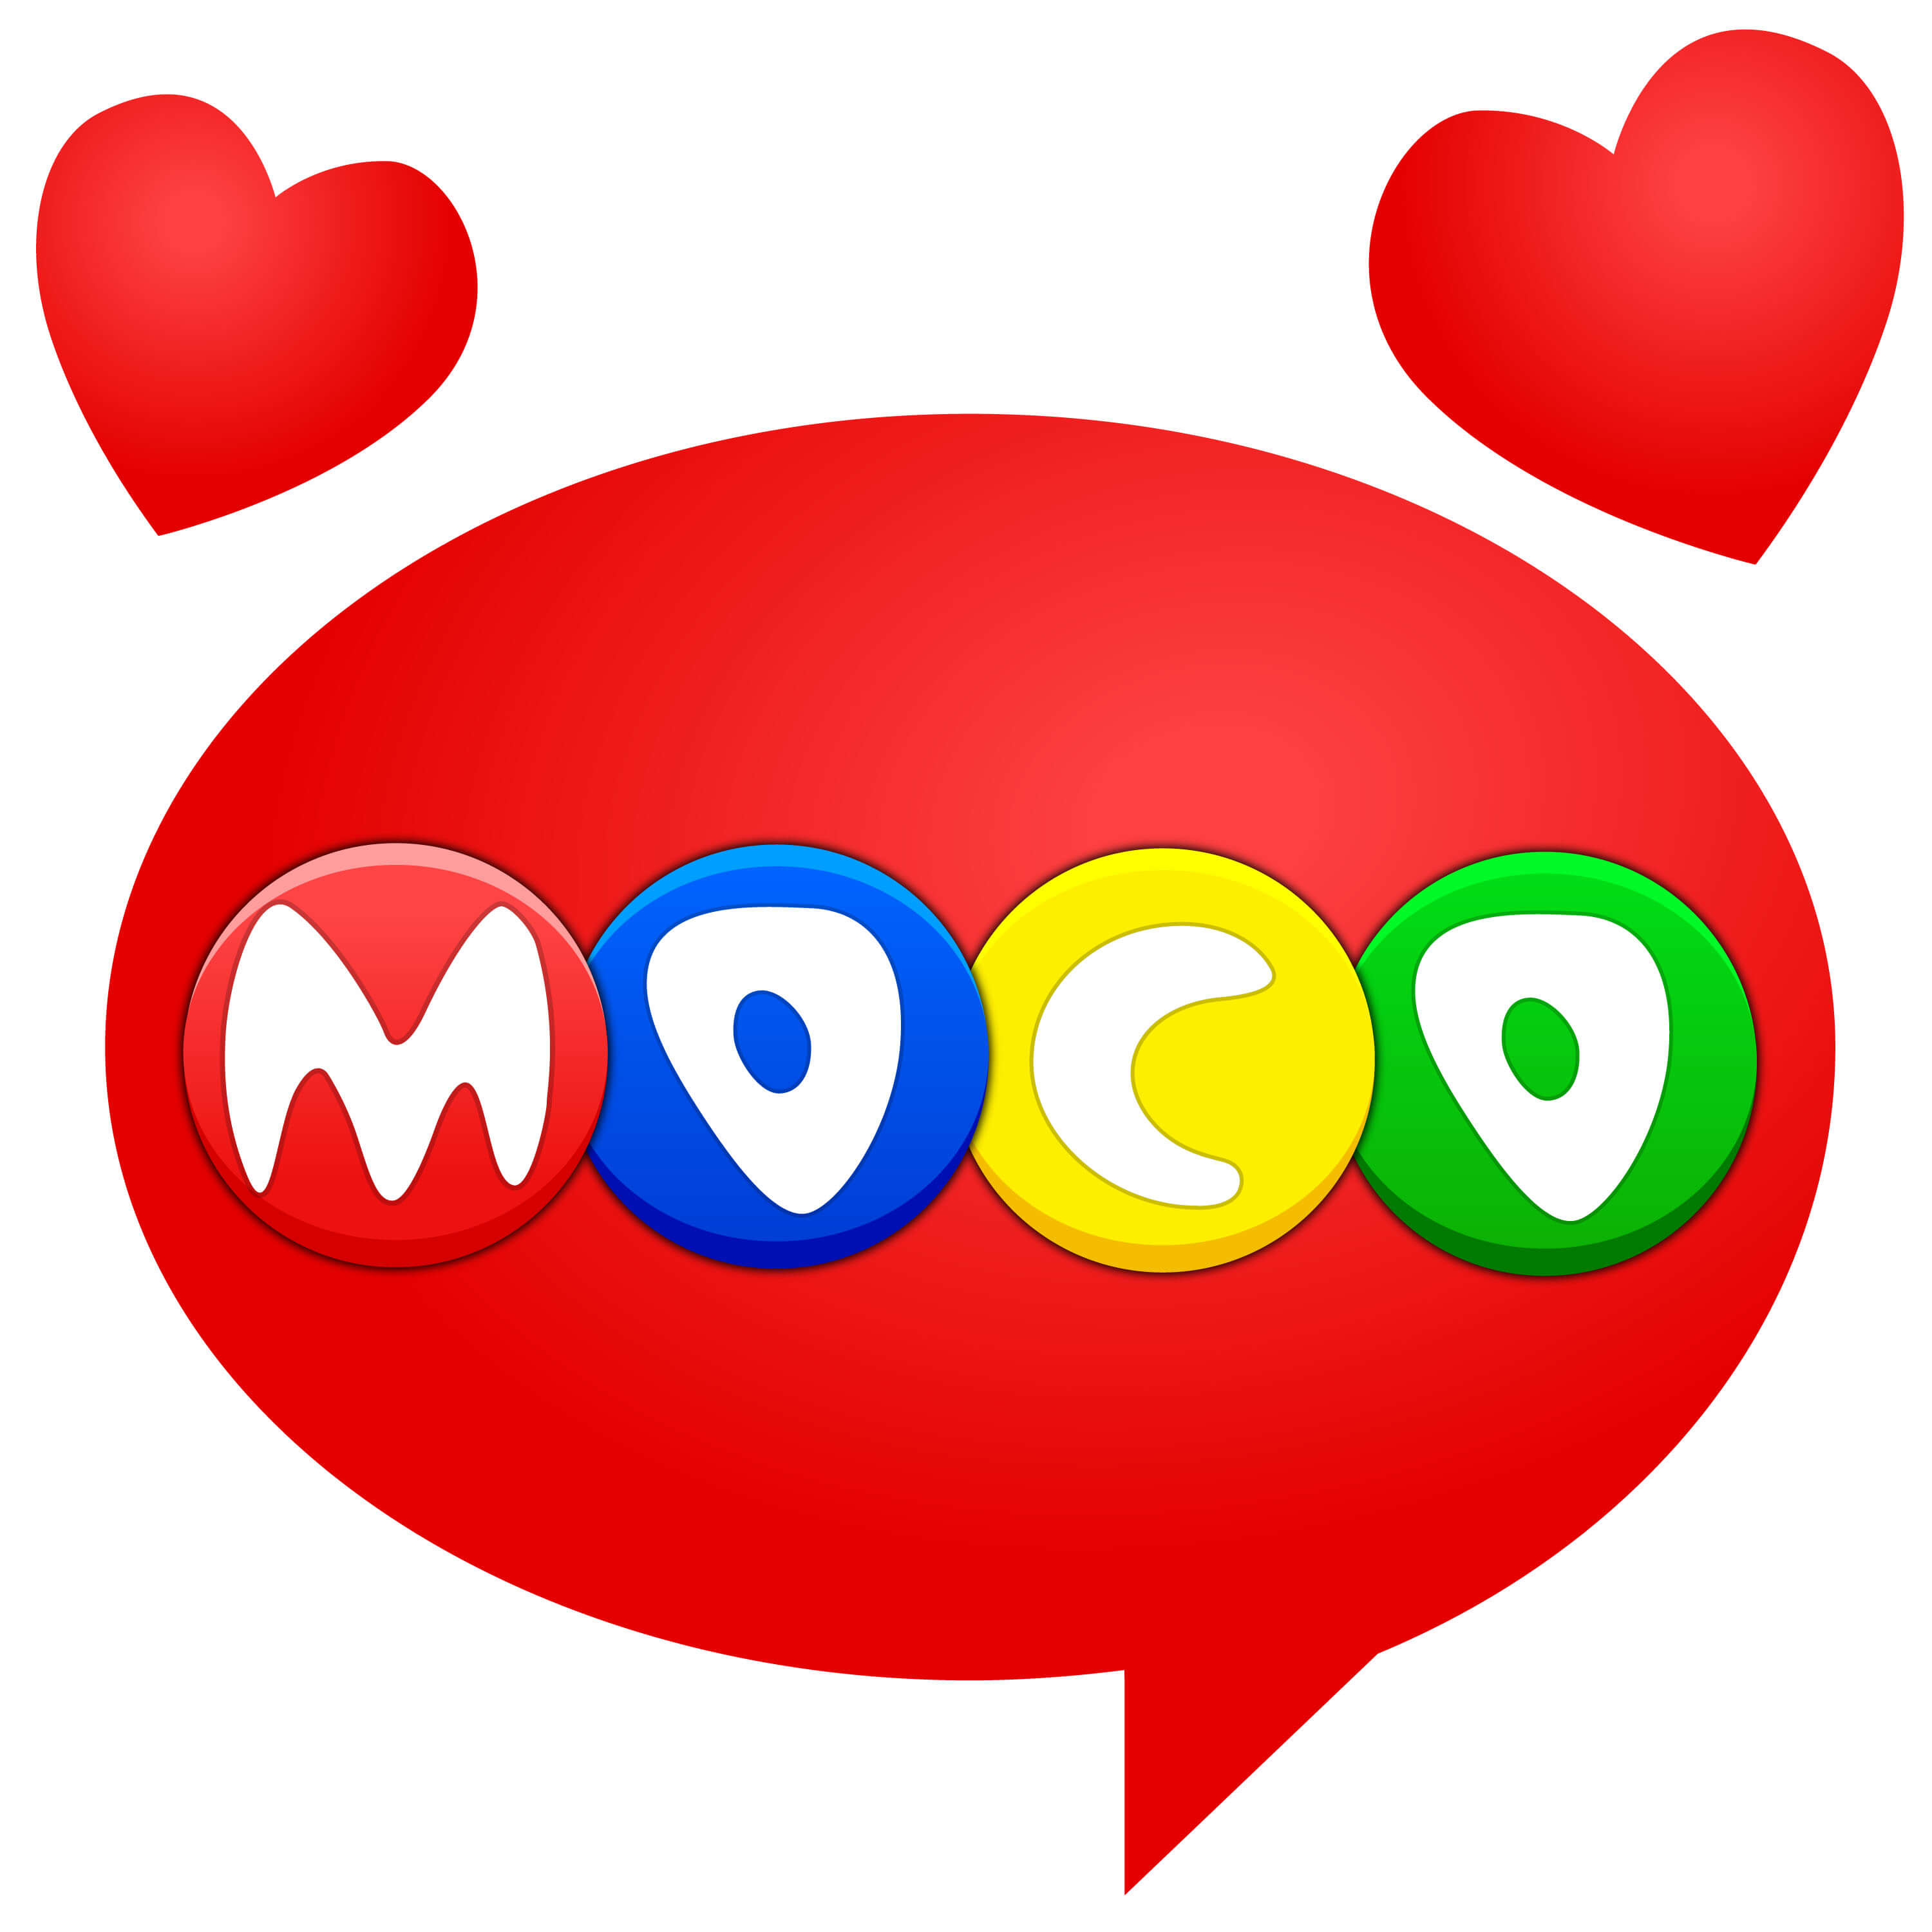 Mocospace Review September 2019: Good for Romance